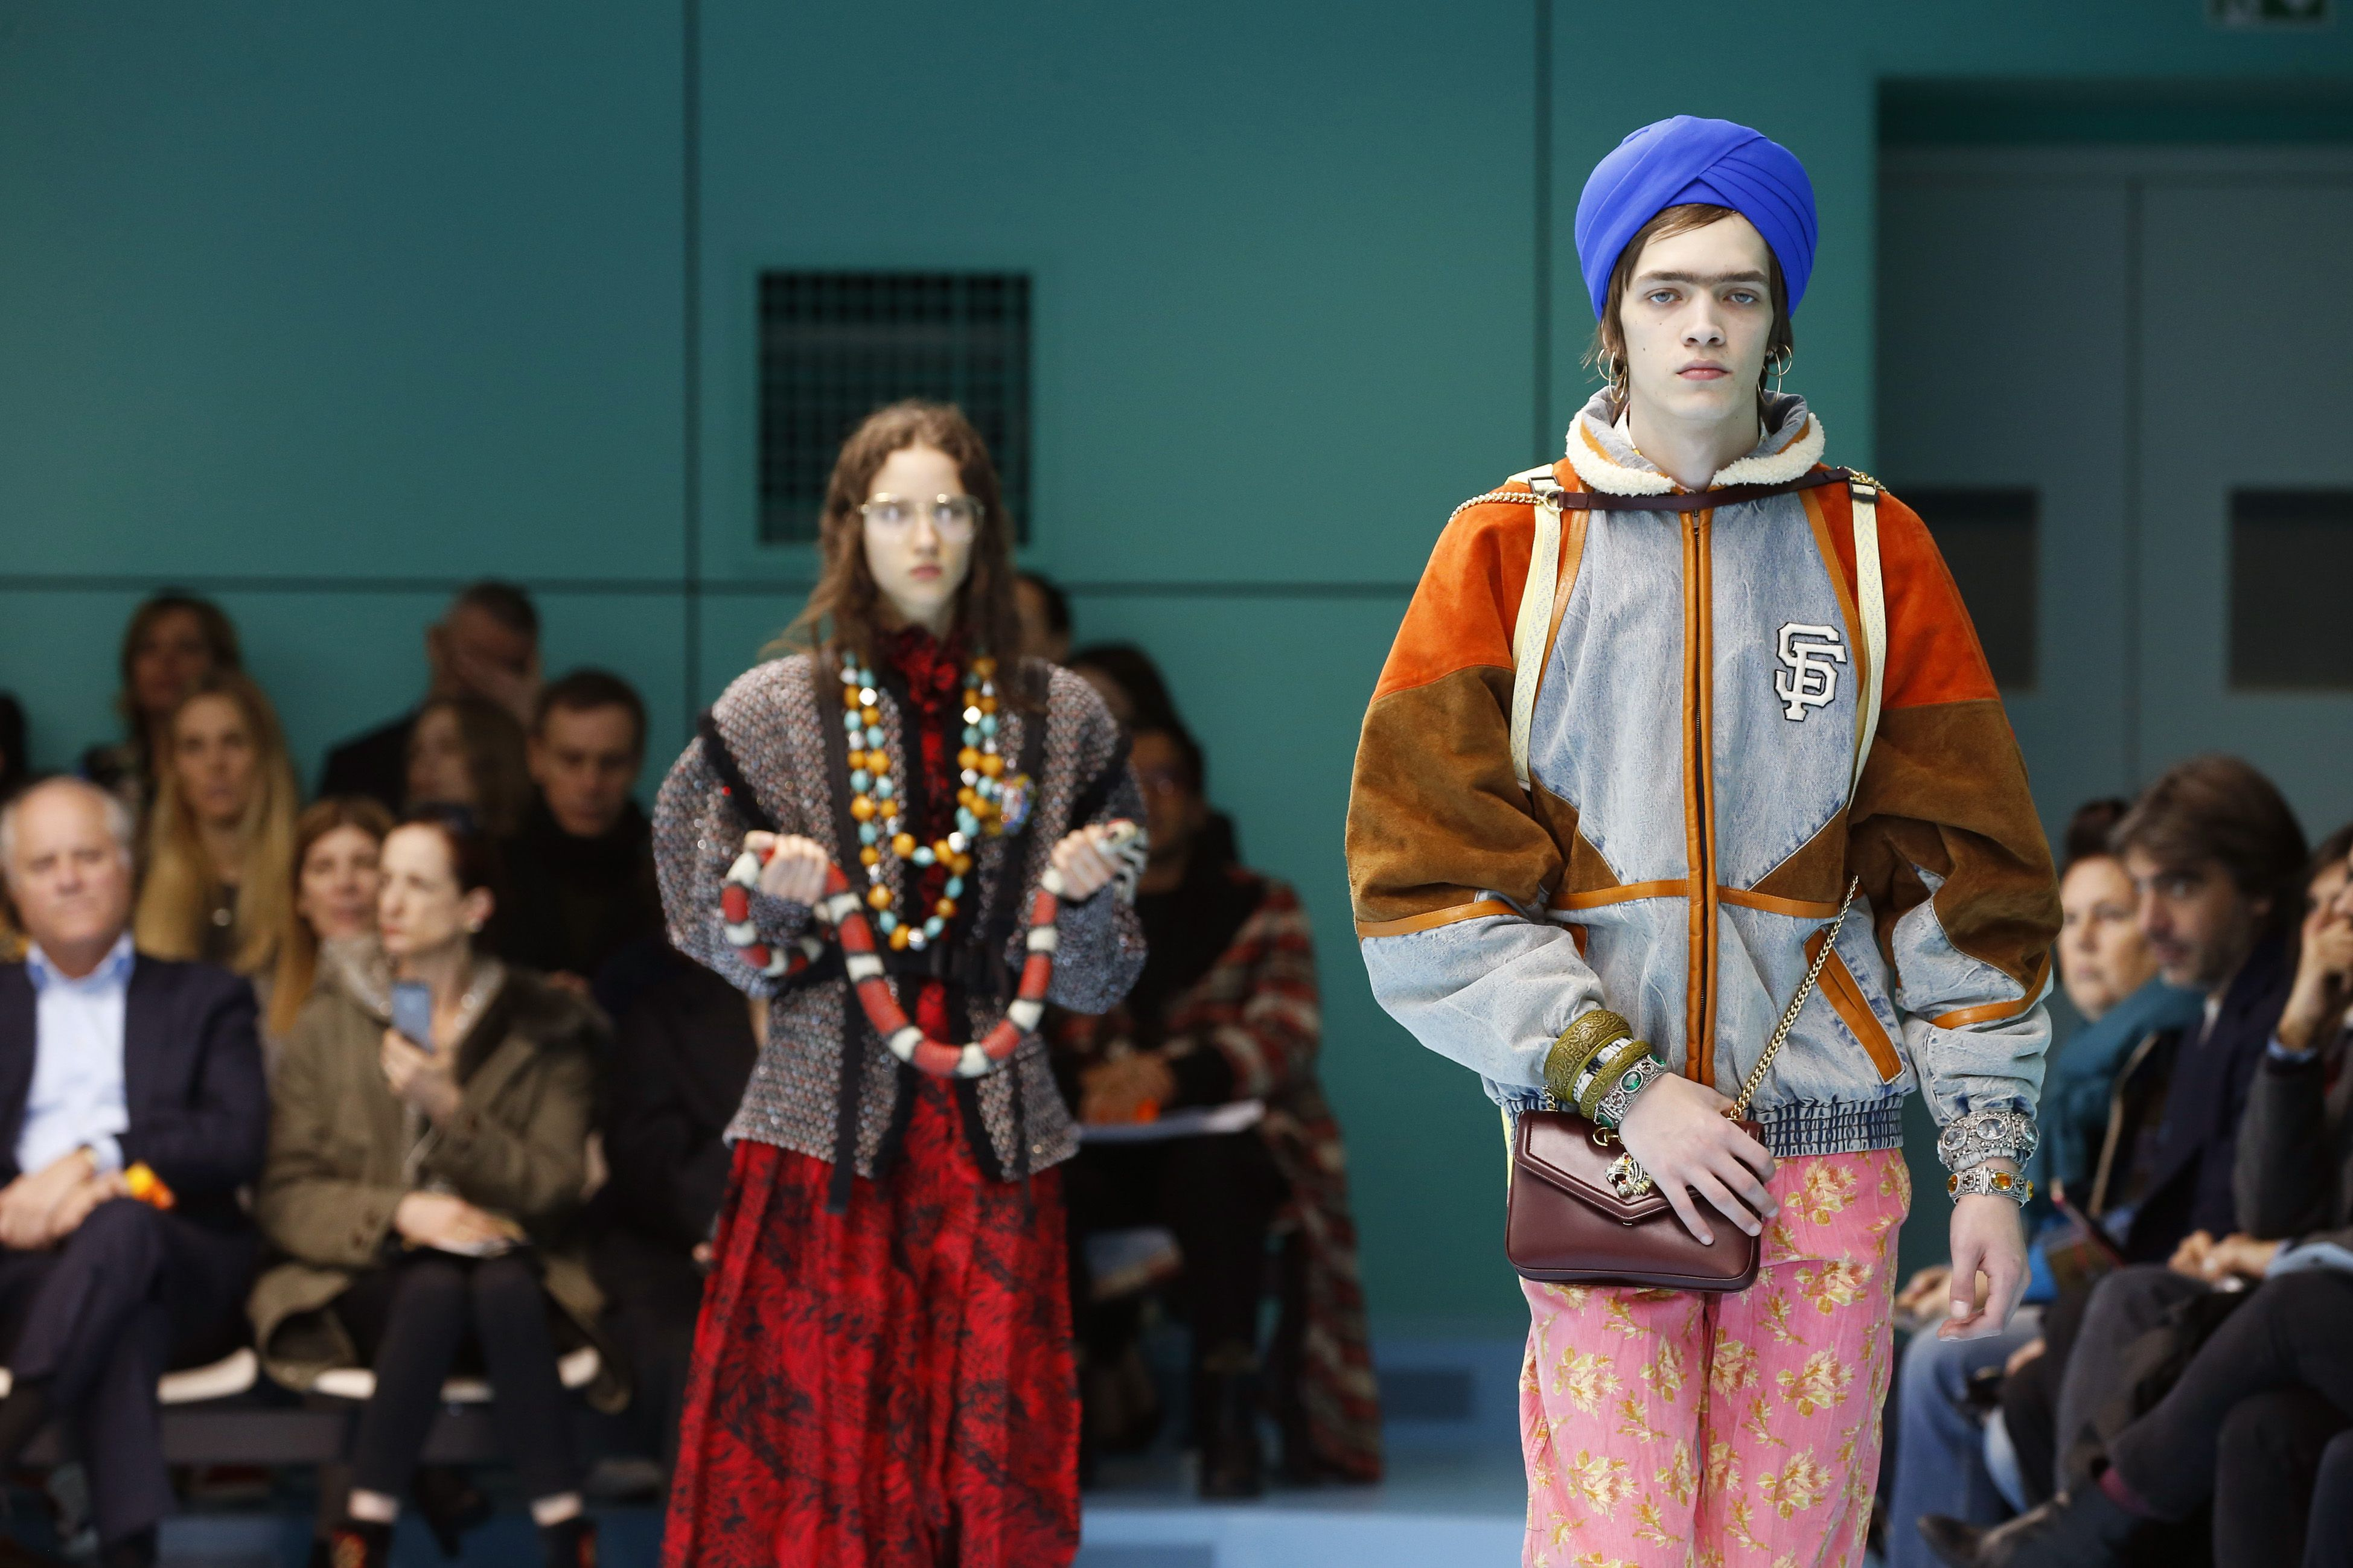 Gucci's $790 'Indy Full Turban' Sparks Renewed Charges of Cultural Insensitivity